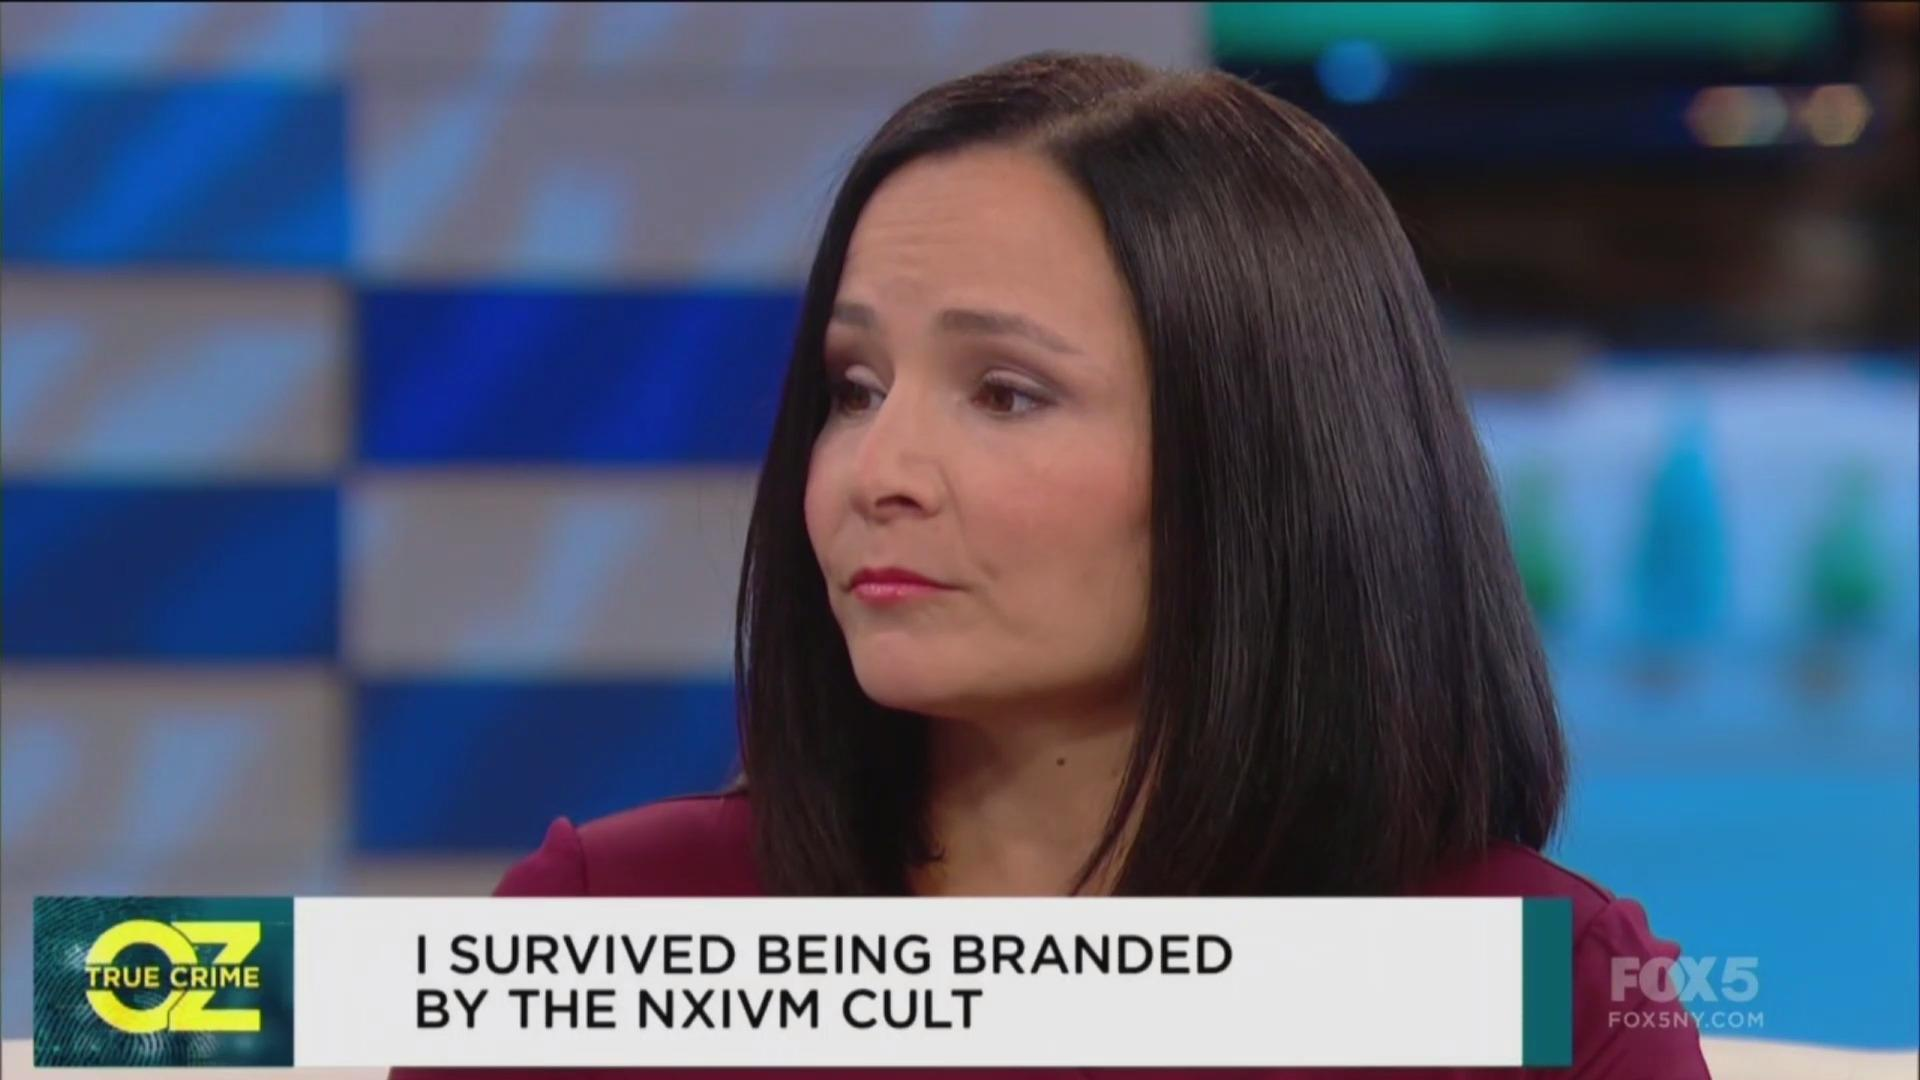 Actress Sarah Edmondson recalls being branded in 'horrific' Nxivm sex cult ritual and the 'smoky flesh burning' smell